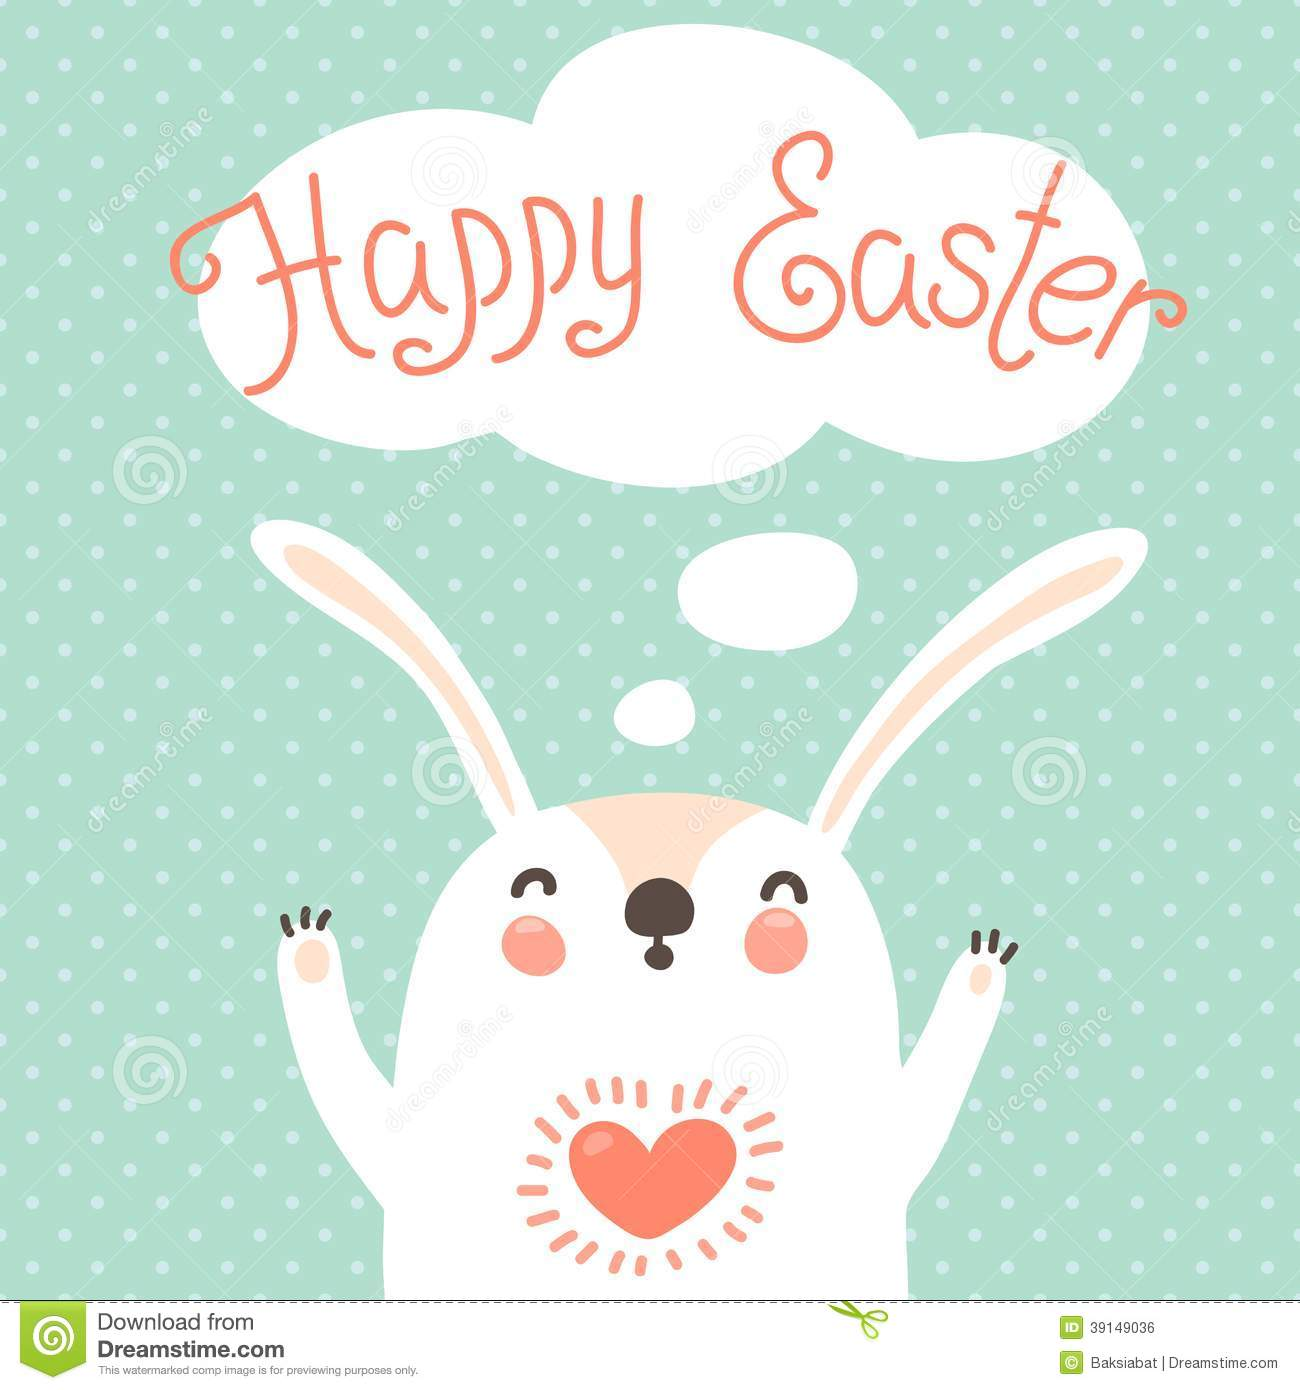 Happy Easter Card With Cute Bunny. Stock Vector - Image: 39149036